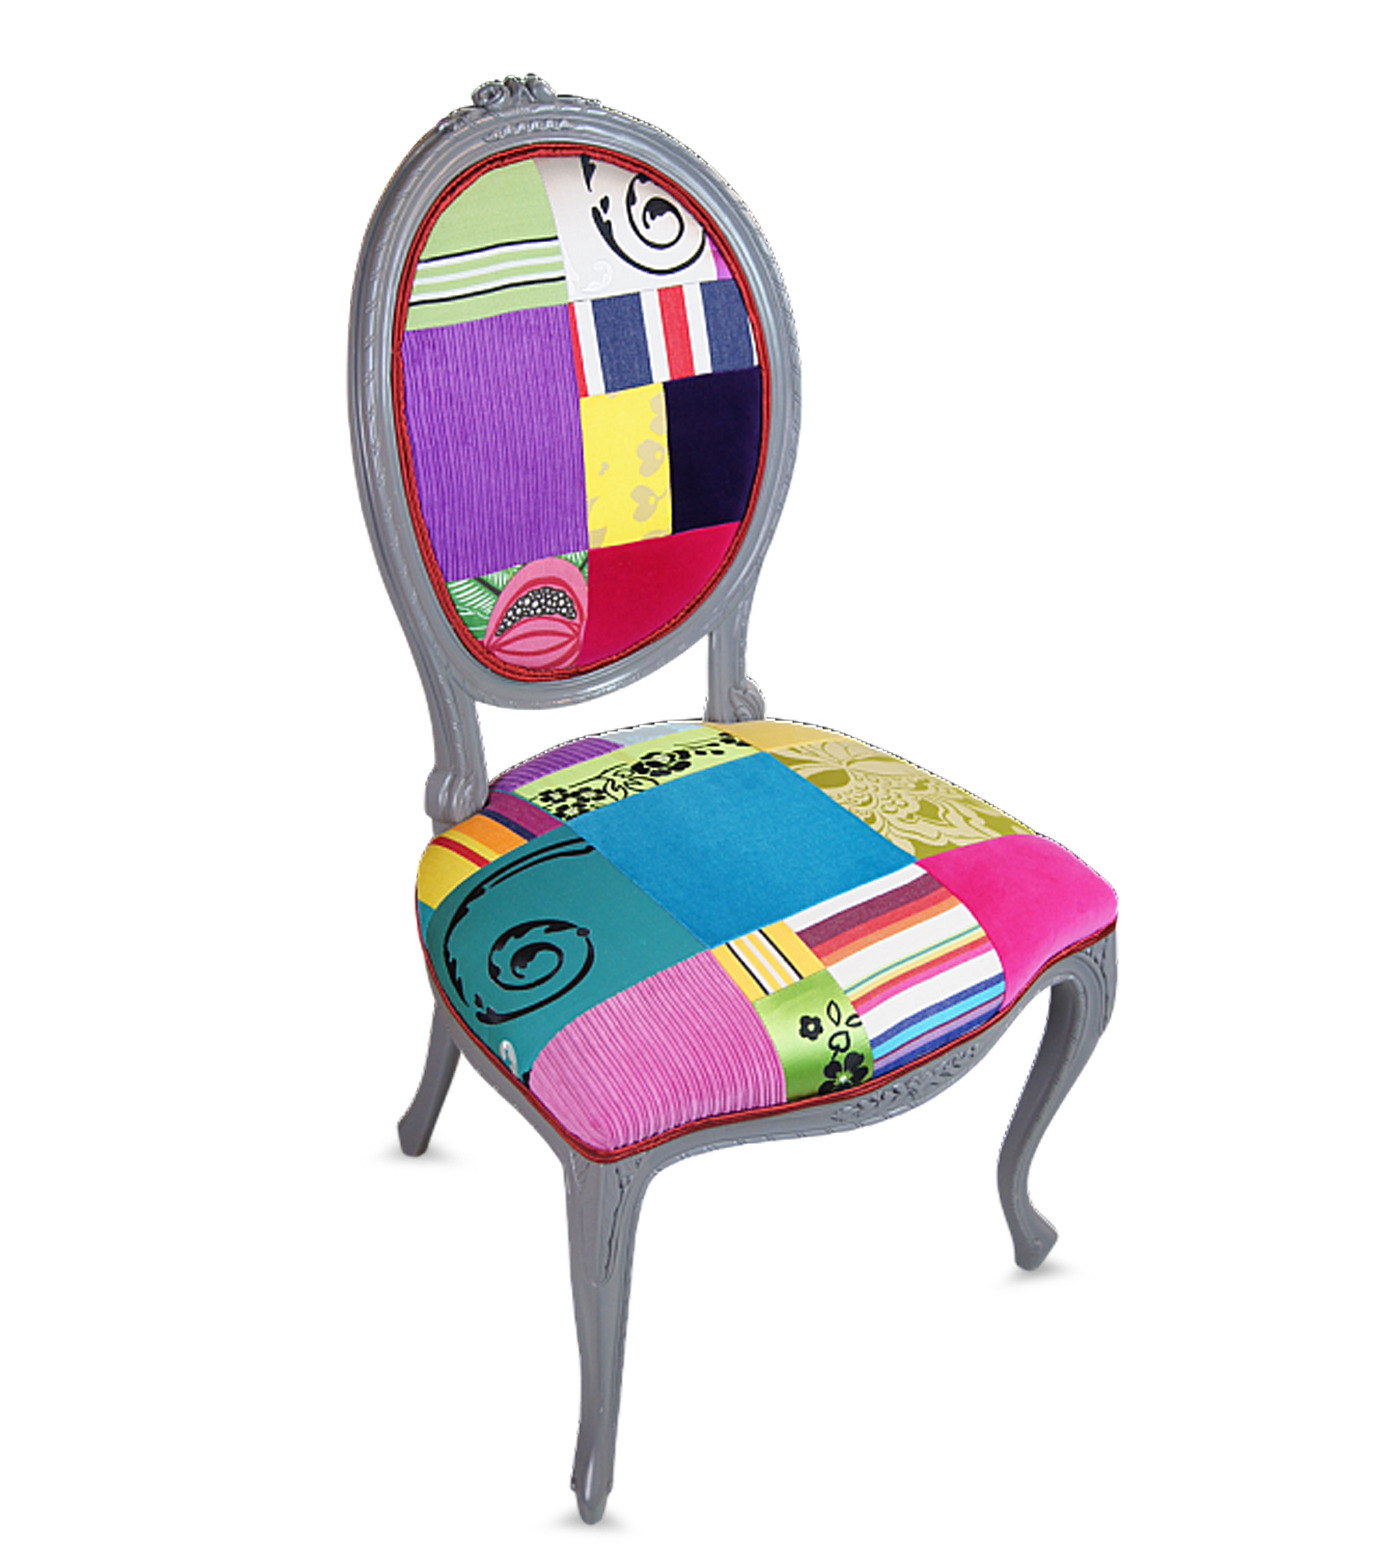 Squintlimited(スクイントリミテッド)のFrench Oval Cabriolet chair-NONE-12-0 拡大詳細画像2